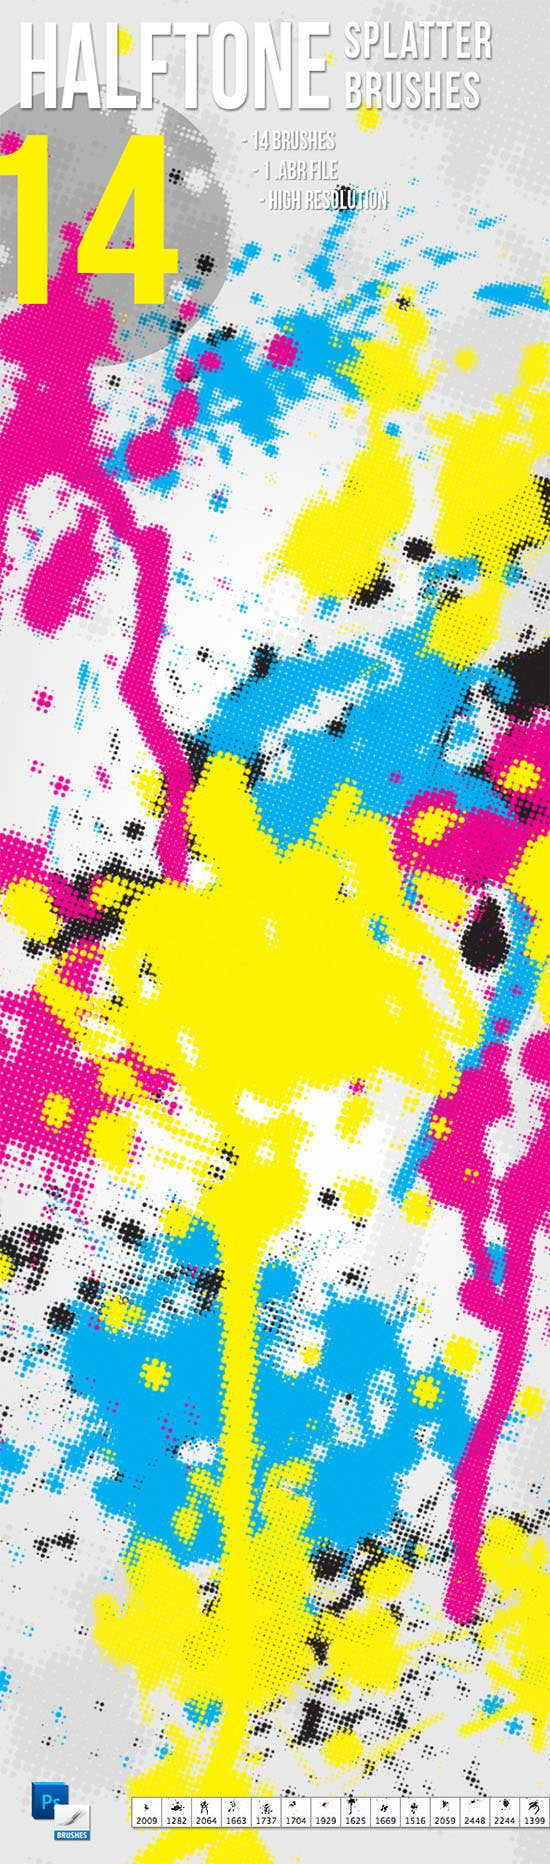 14 halftone splatter brushes